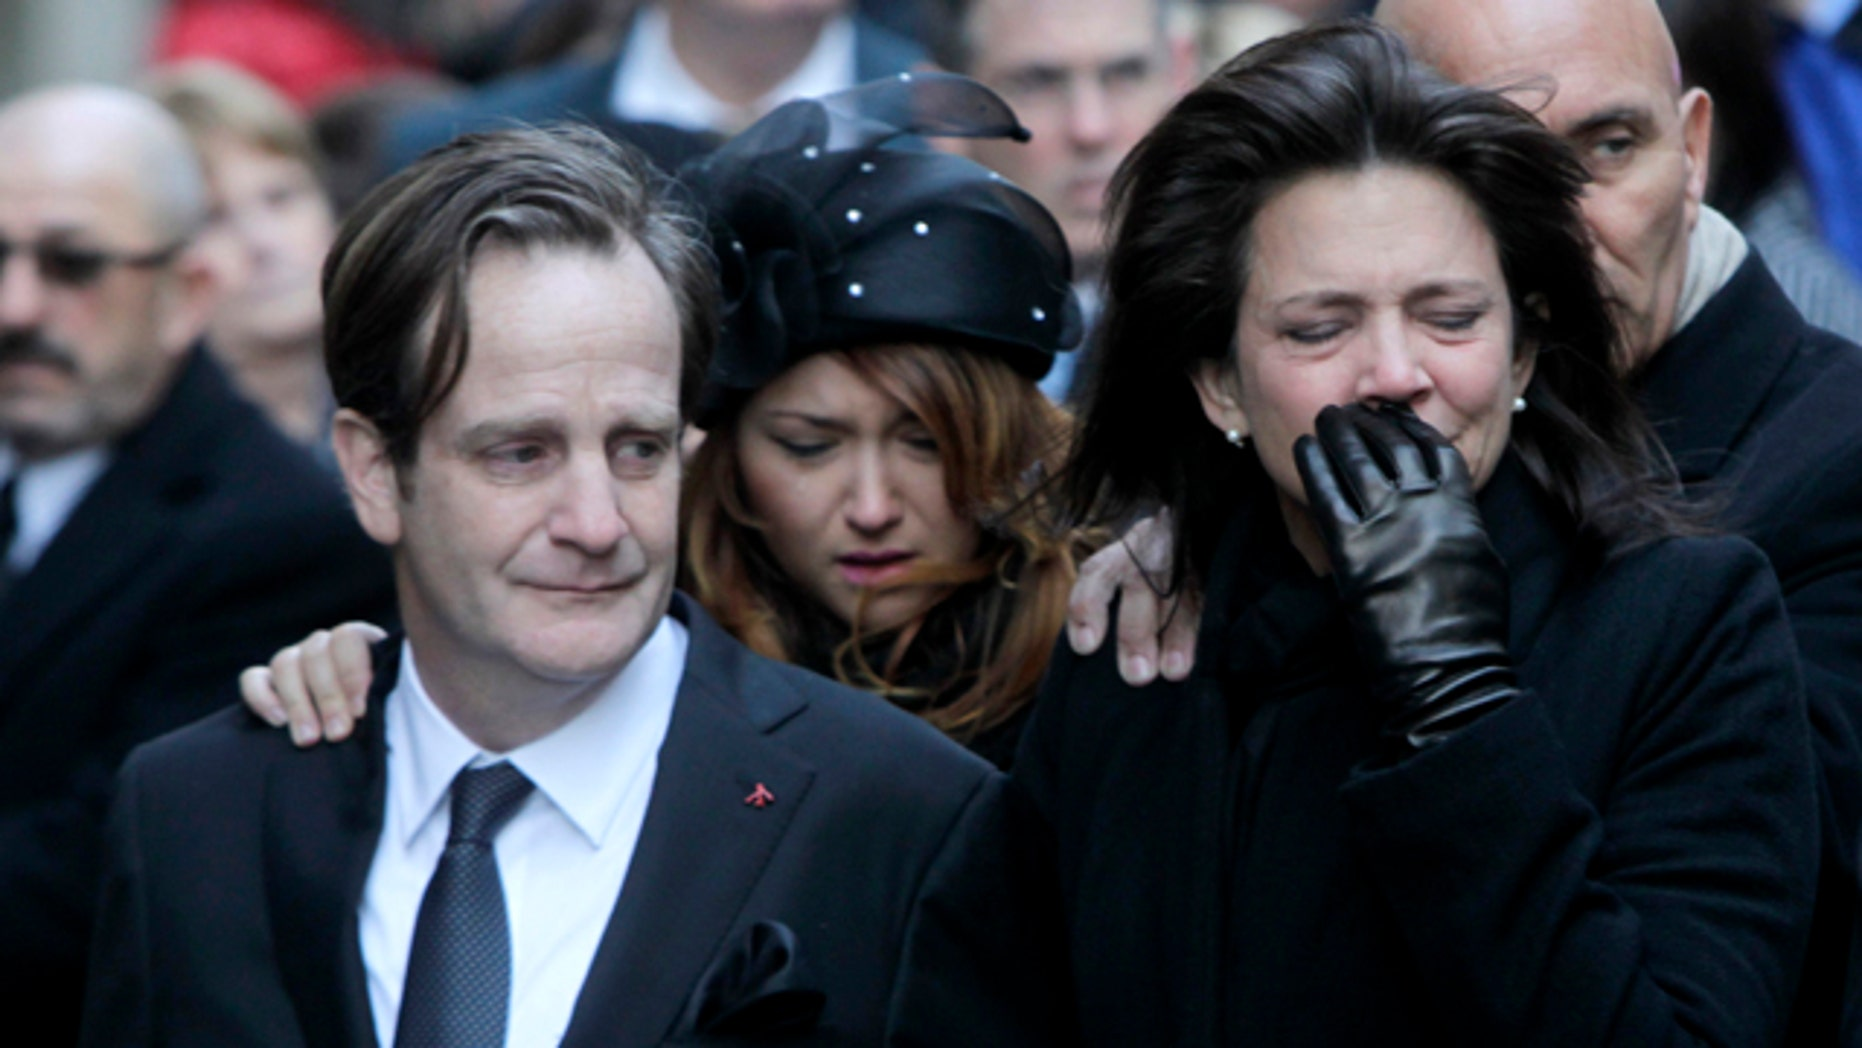 Jan. 5, 2012: Matthew Badger, left, and Madonna Badger, the parents of three children that were killed in a fire, react as their caskets are carried into a church during the funeral in New York.